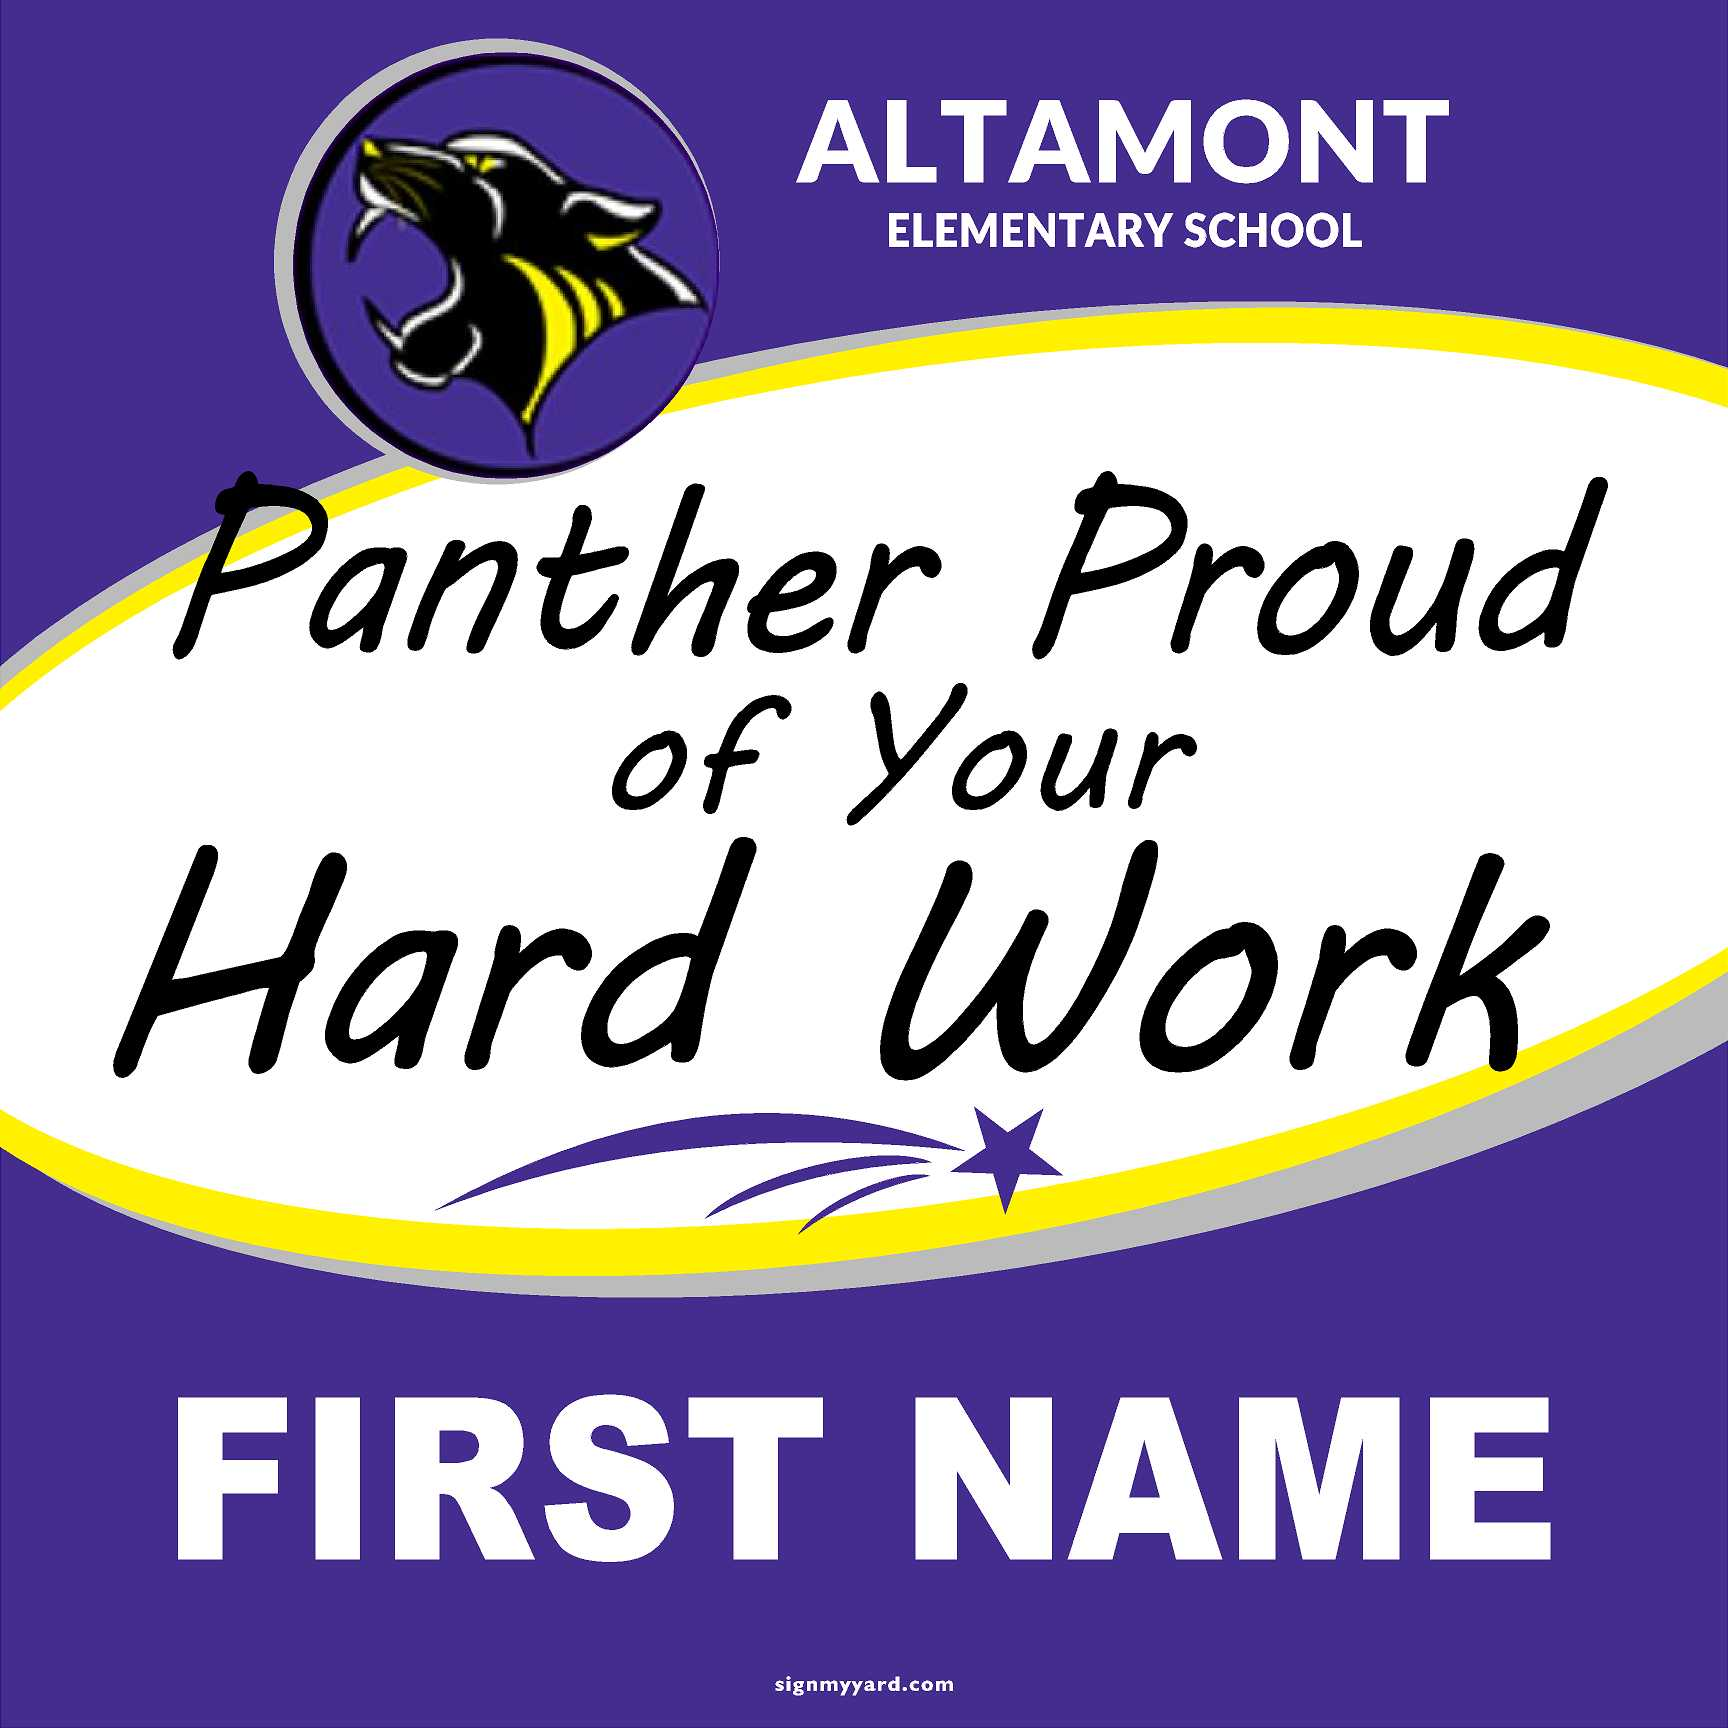 Altamont Elementary Panther Proud 24x24 Yard Sign (includes installation in your yard)